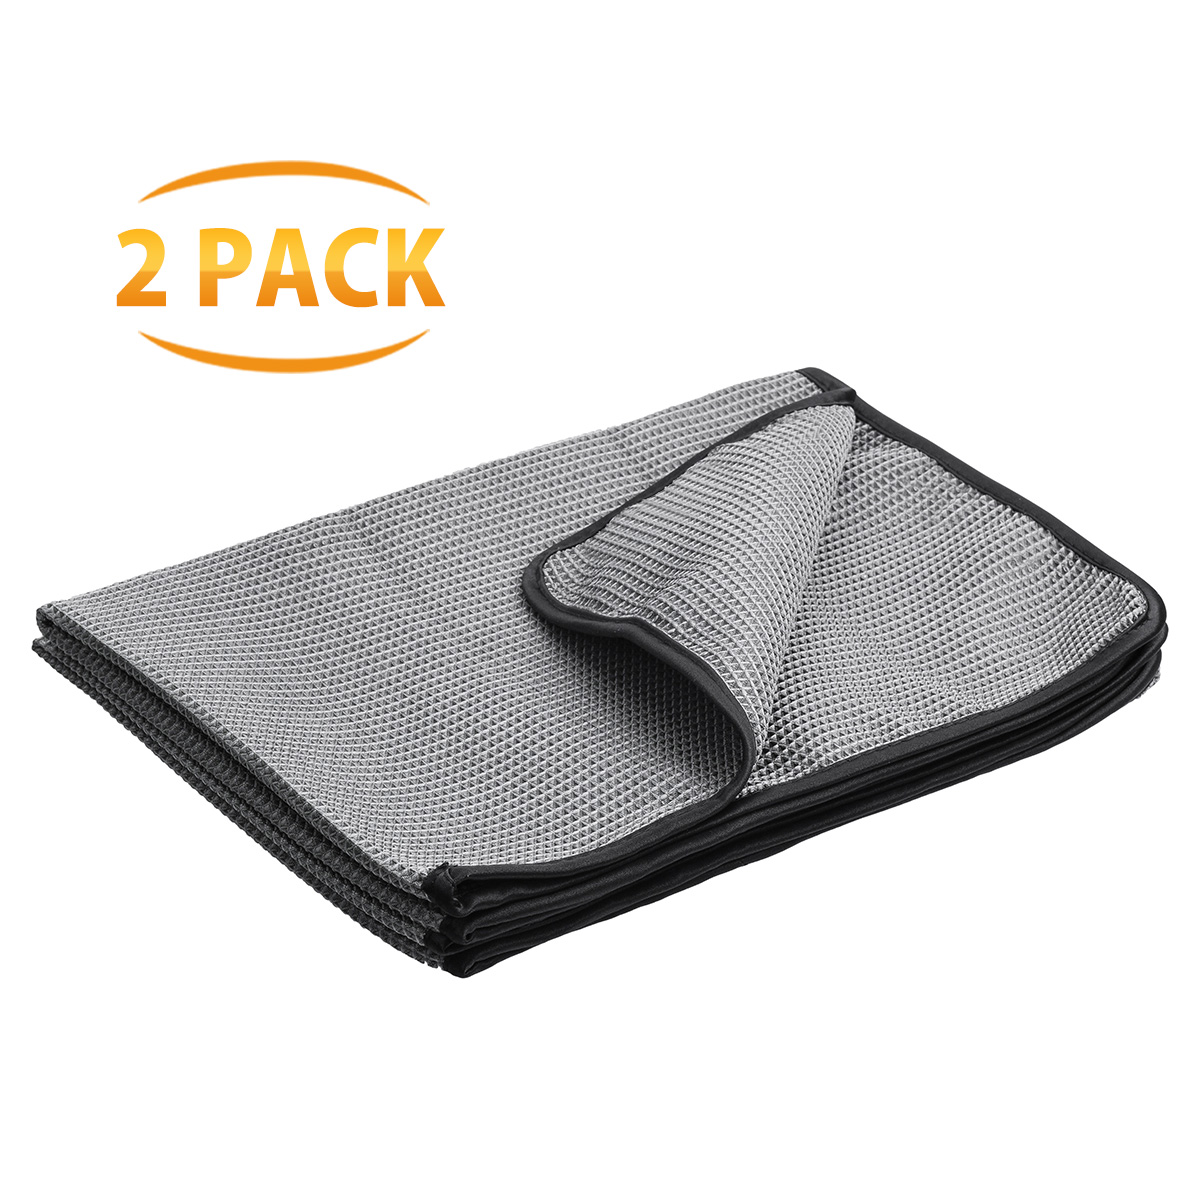 Waffle Weave Microfibre Cleaning Cloths